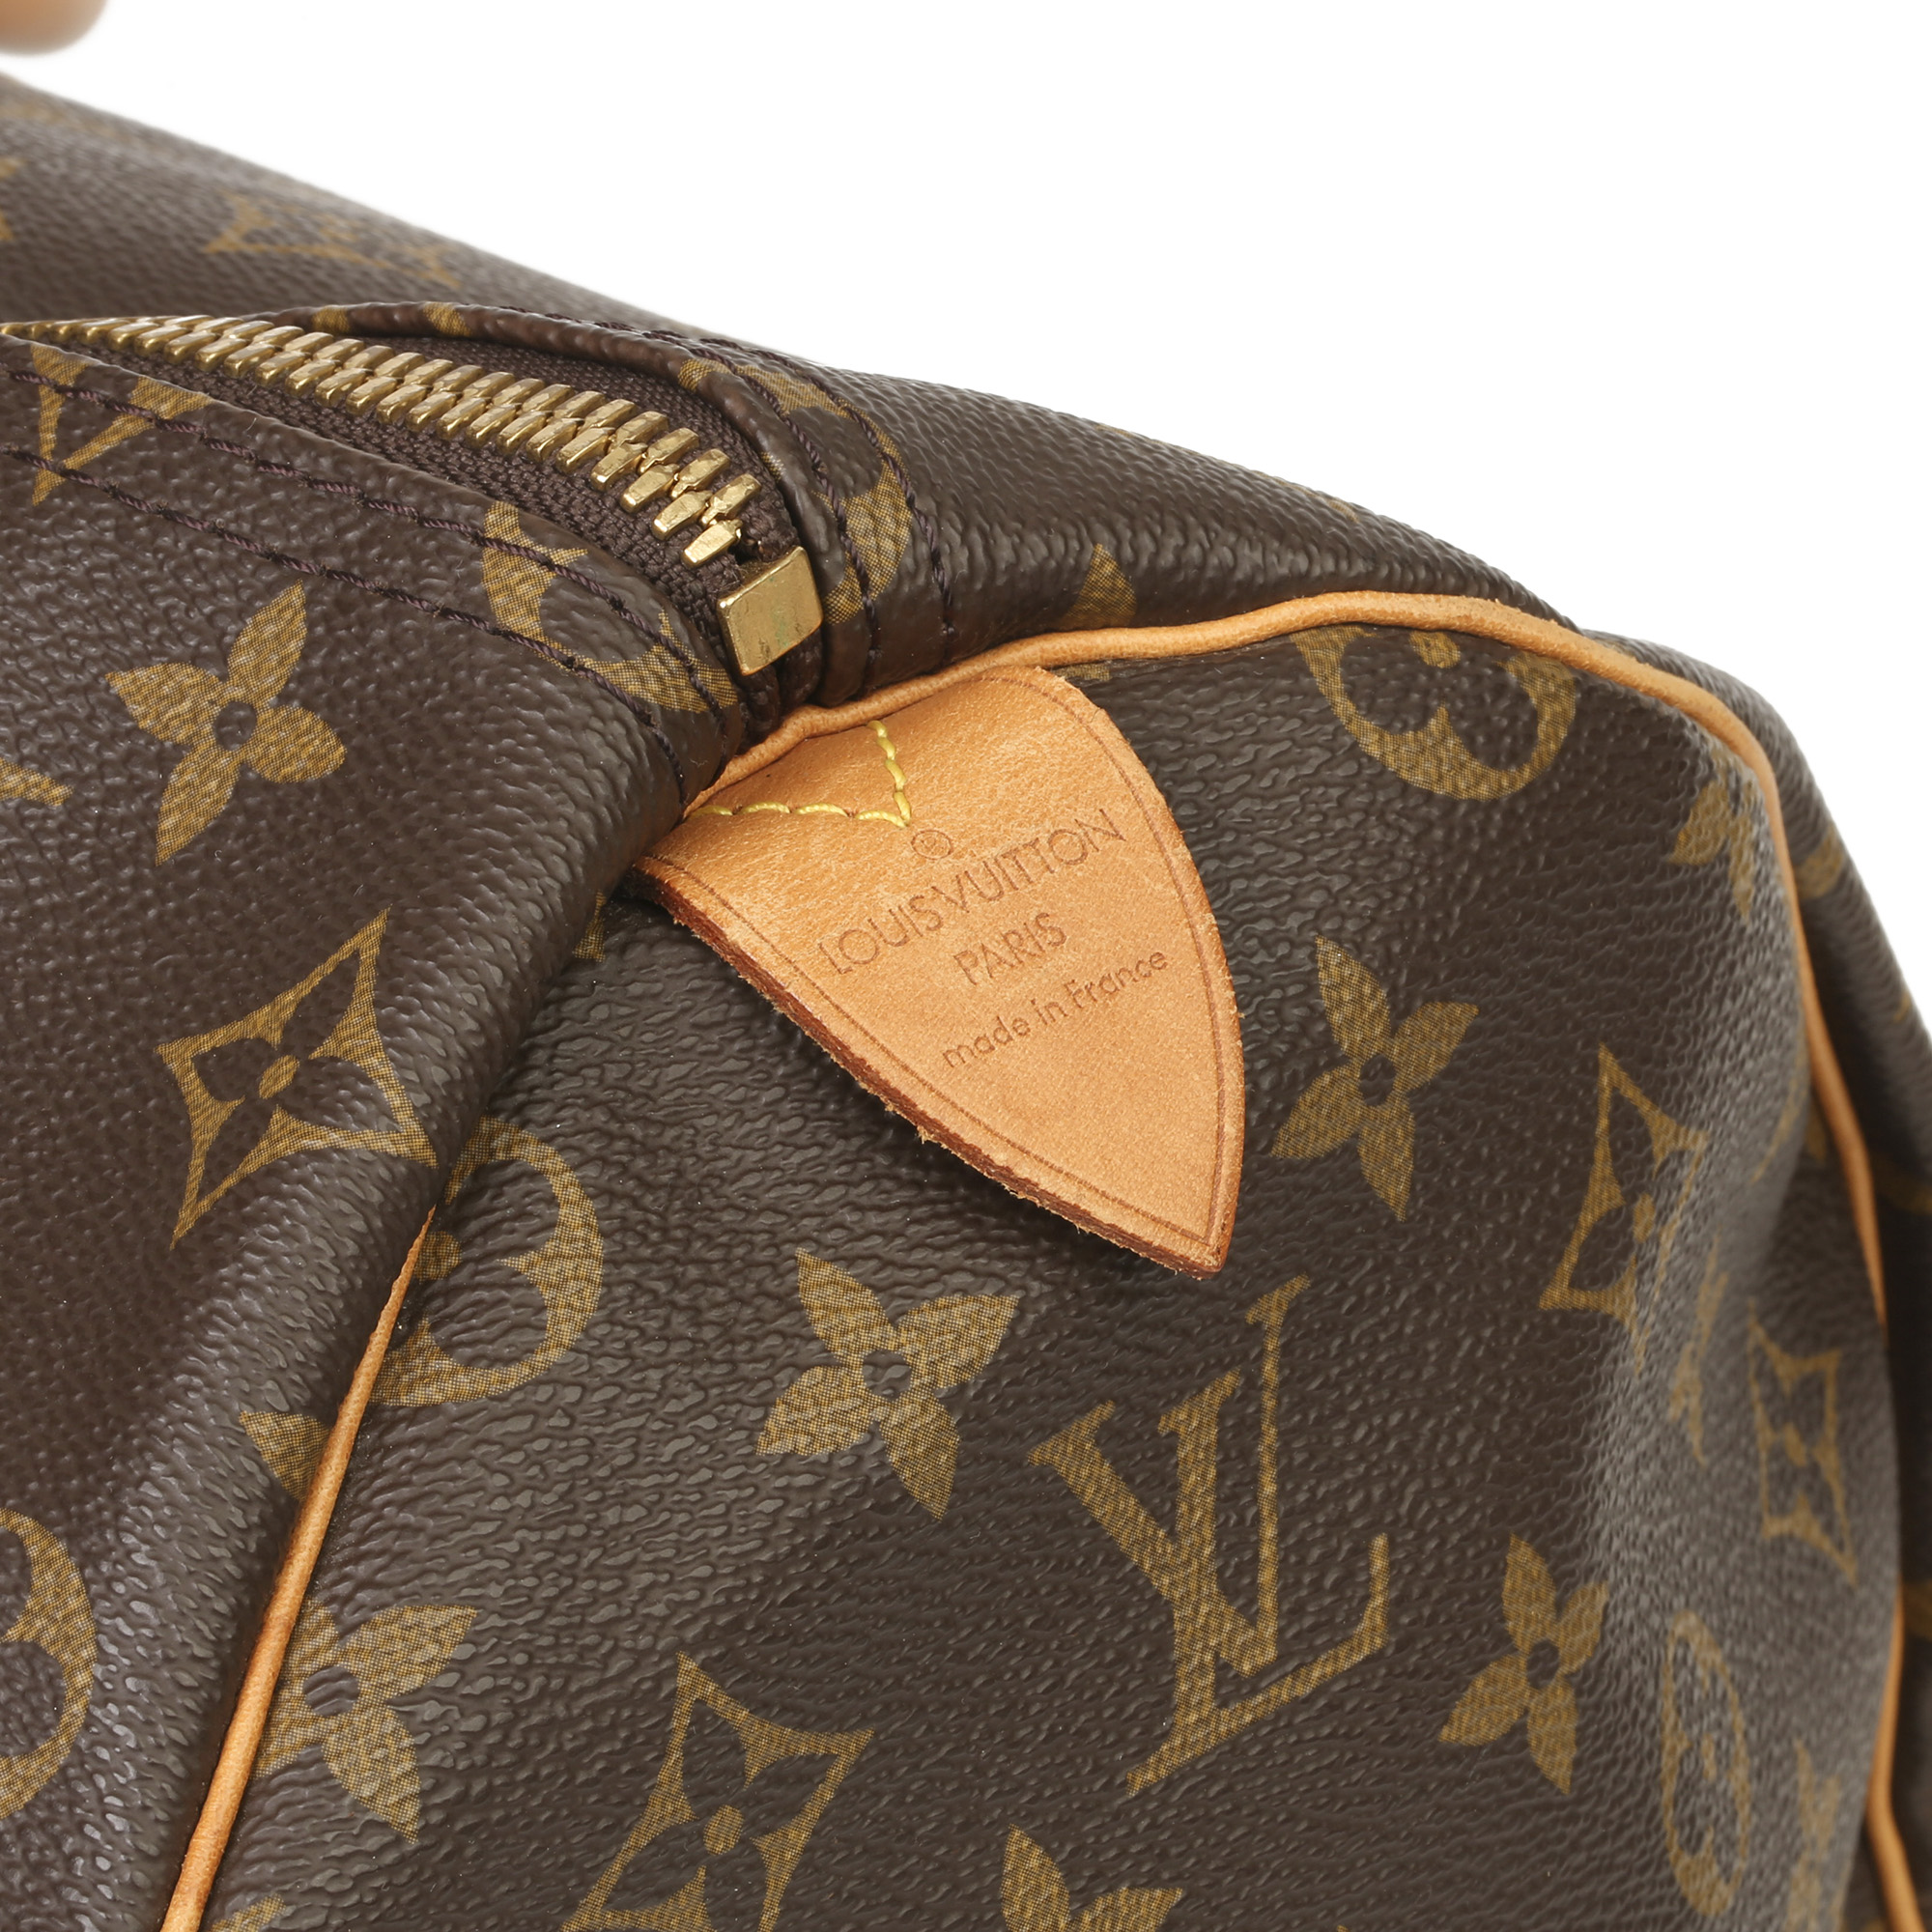 Louis Vuitton Brown Monogram Coated Canvas & Vachetta Leather Vintage Keepall 50 - Image 6 of 11